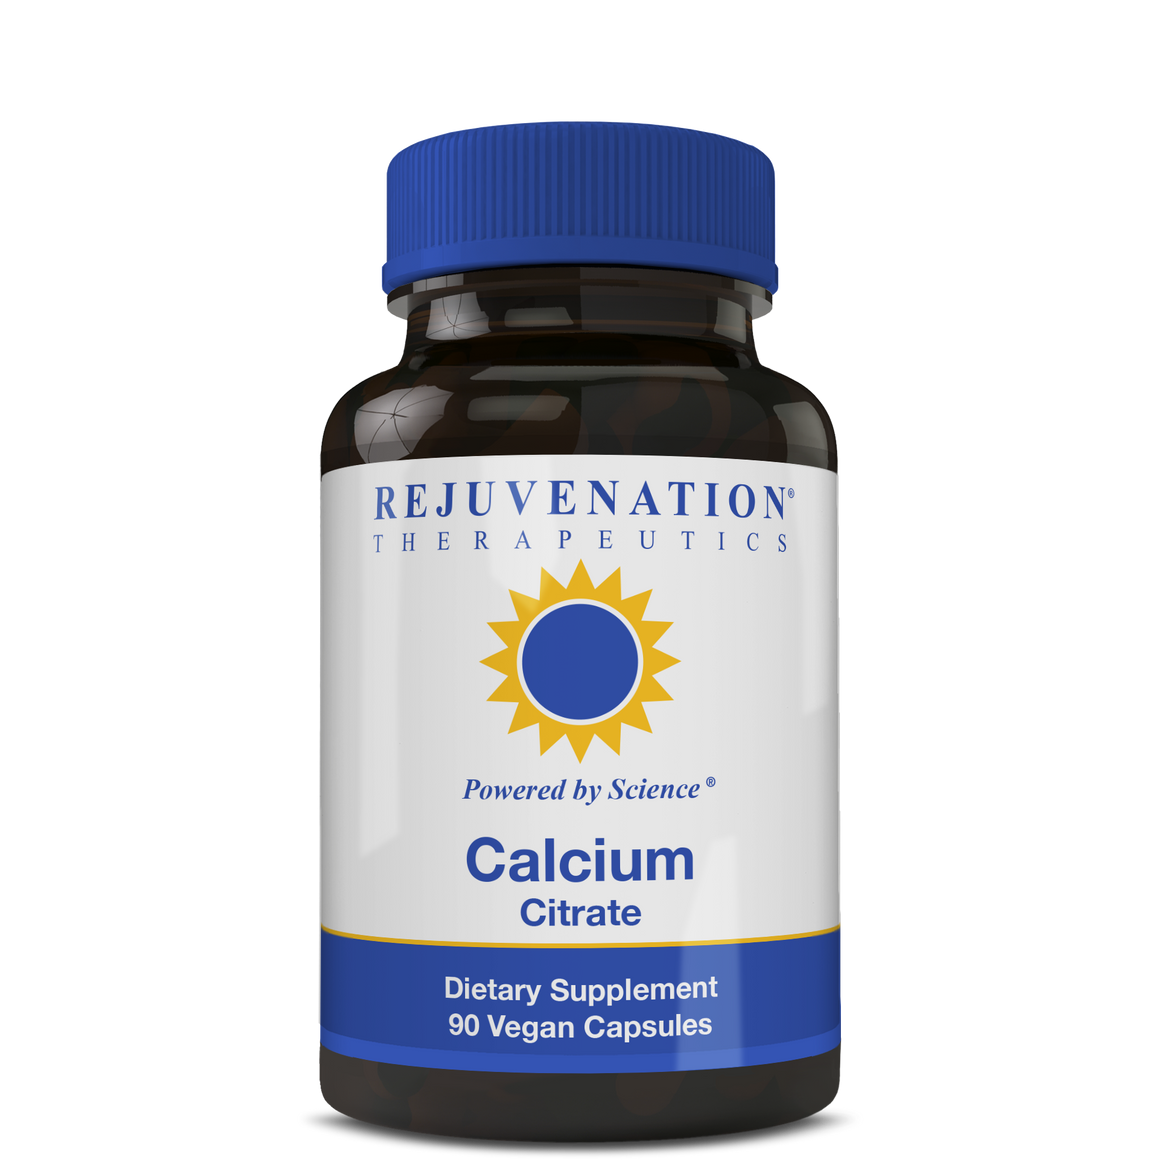 Calcium Citrate (300 mg, 90 Vegan Capsules) - Bone & Heart Health, Non-GMO, Gluten-Free